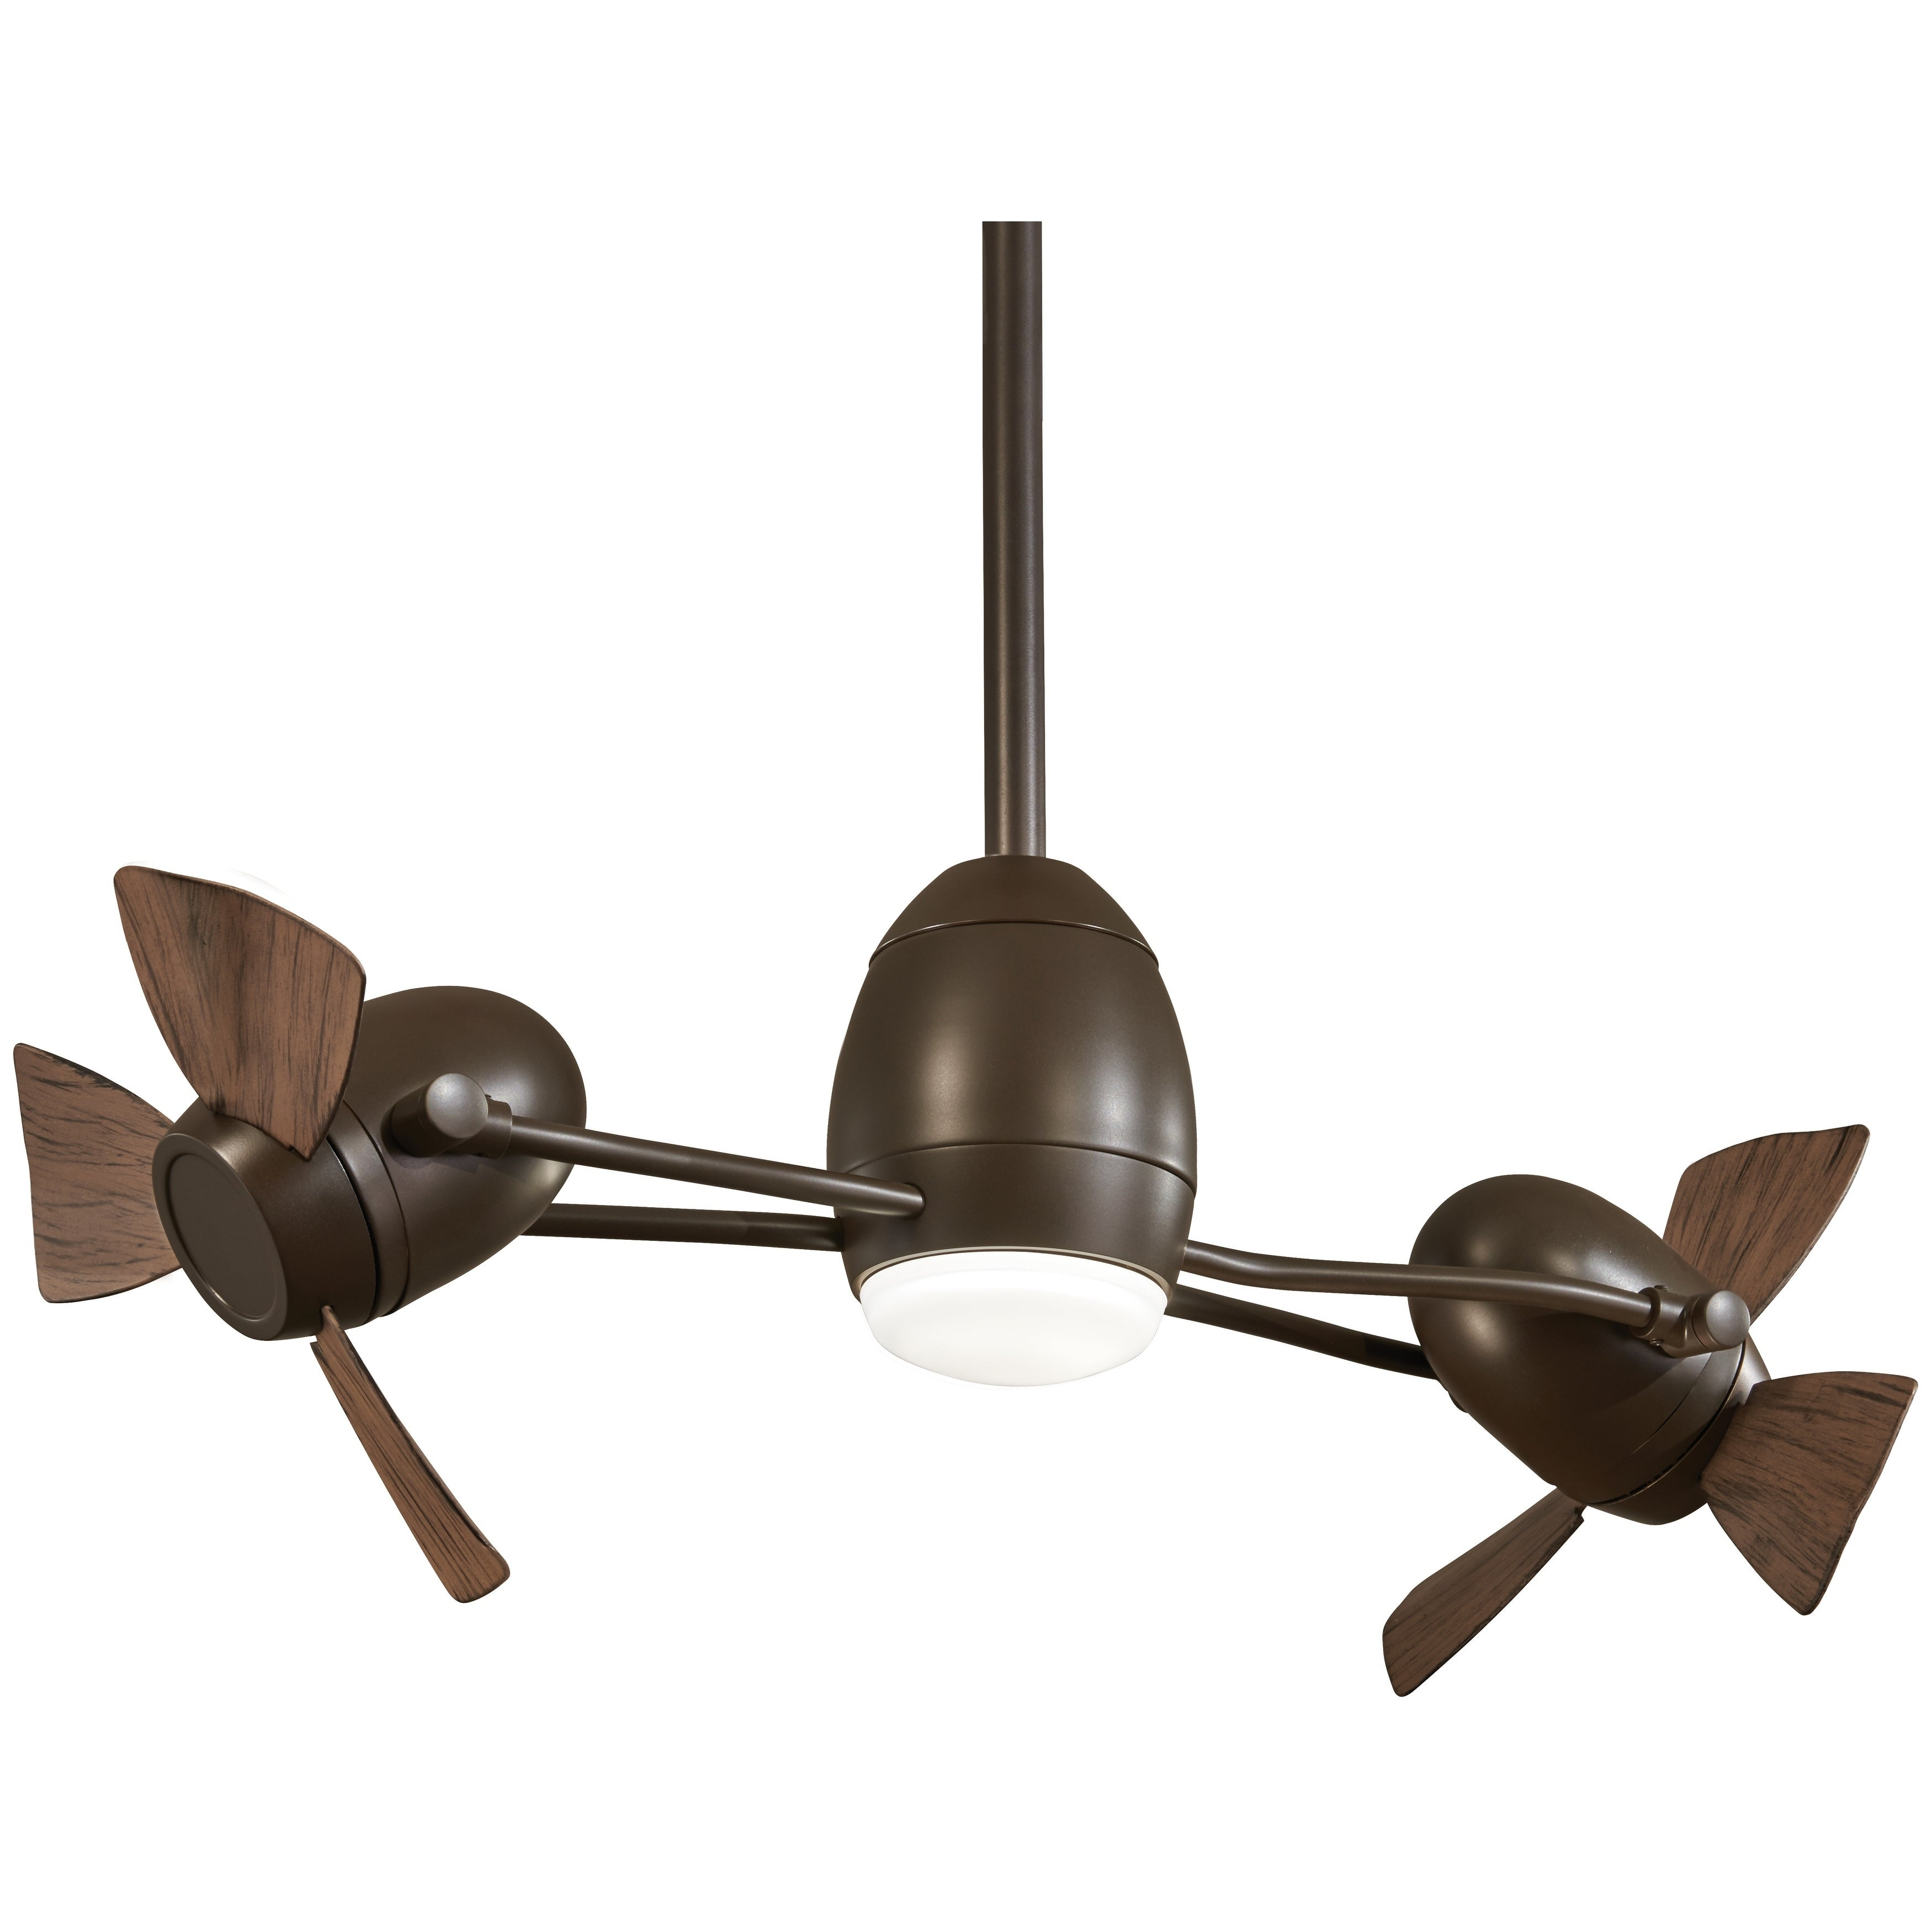 Shop Minka Aire Cage Free Gyroö Ceiling Fan - Free Shipping Today ...